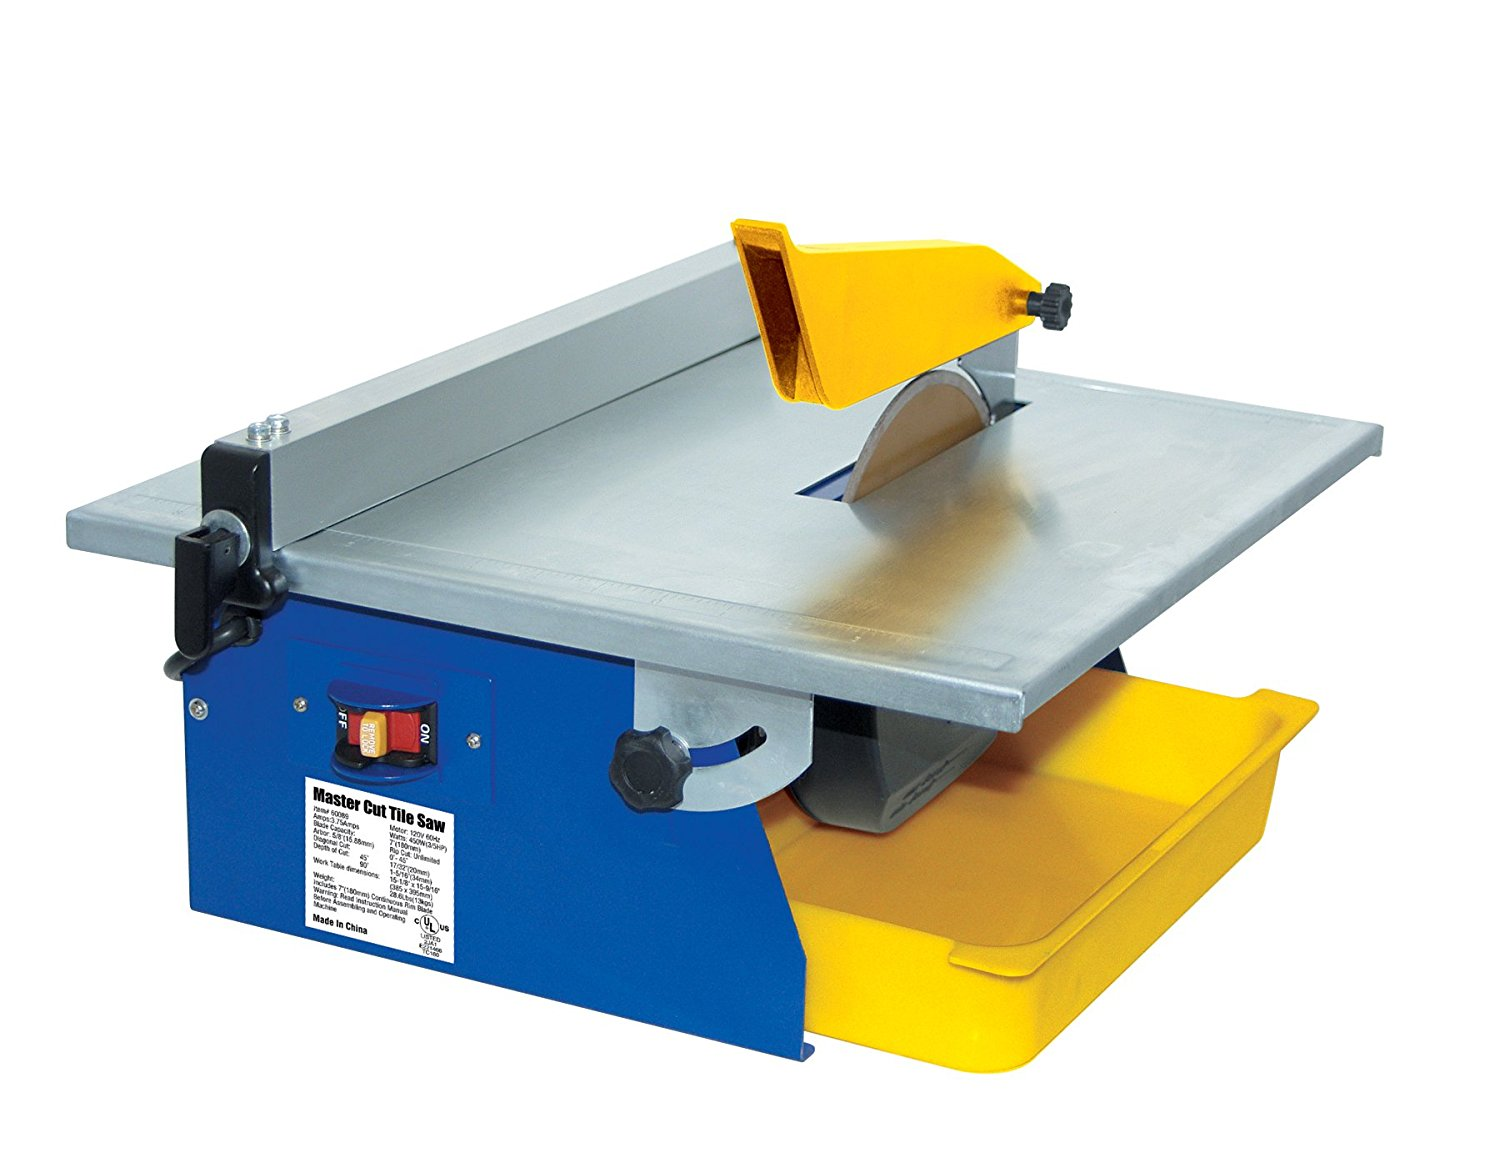 wet saw reviews |tile cutting saw